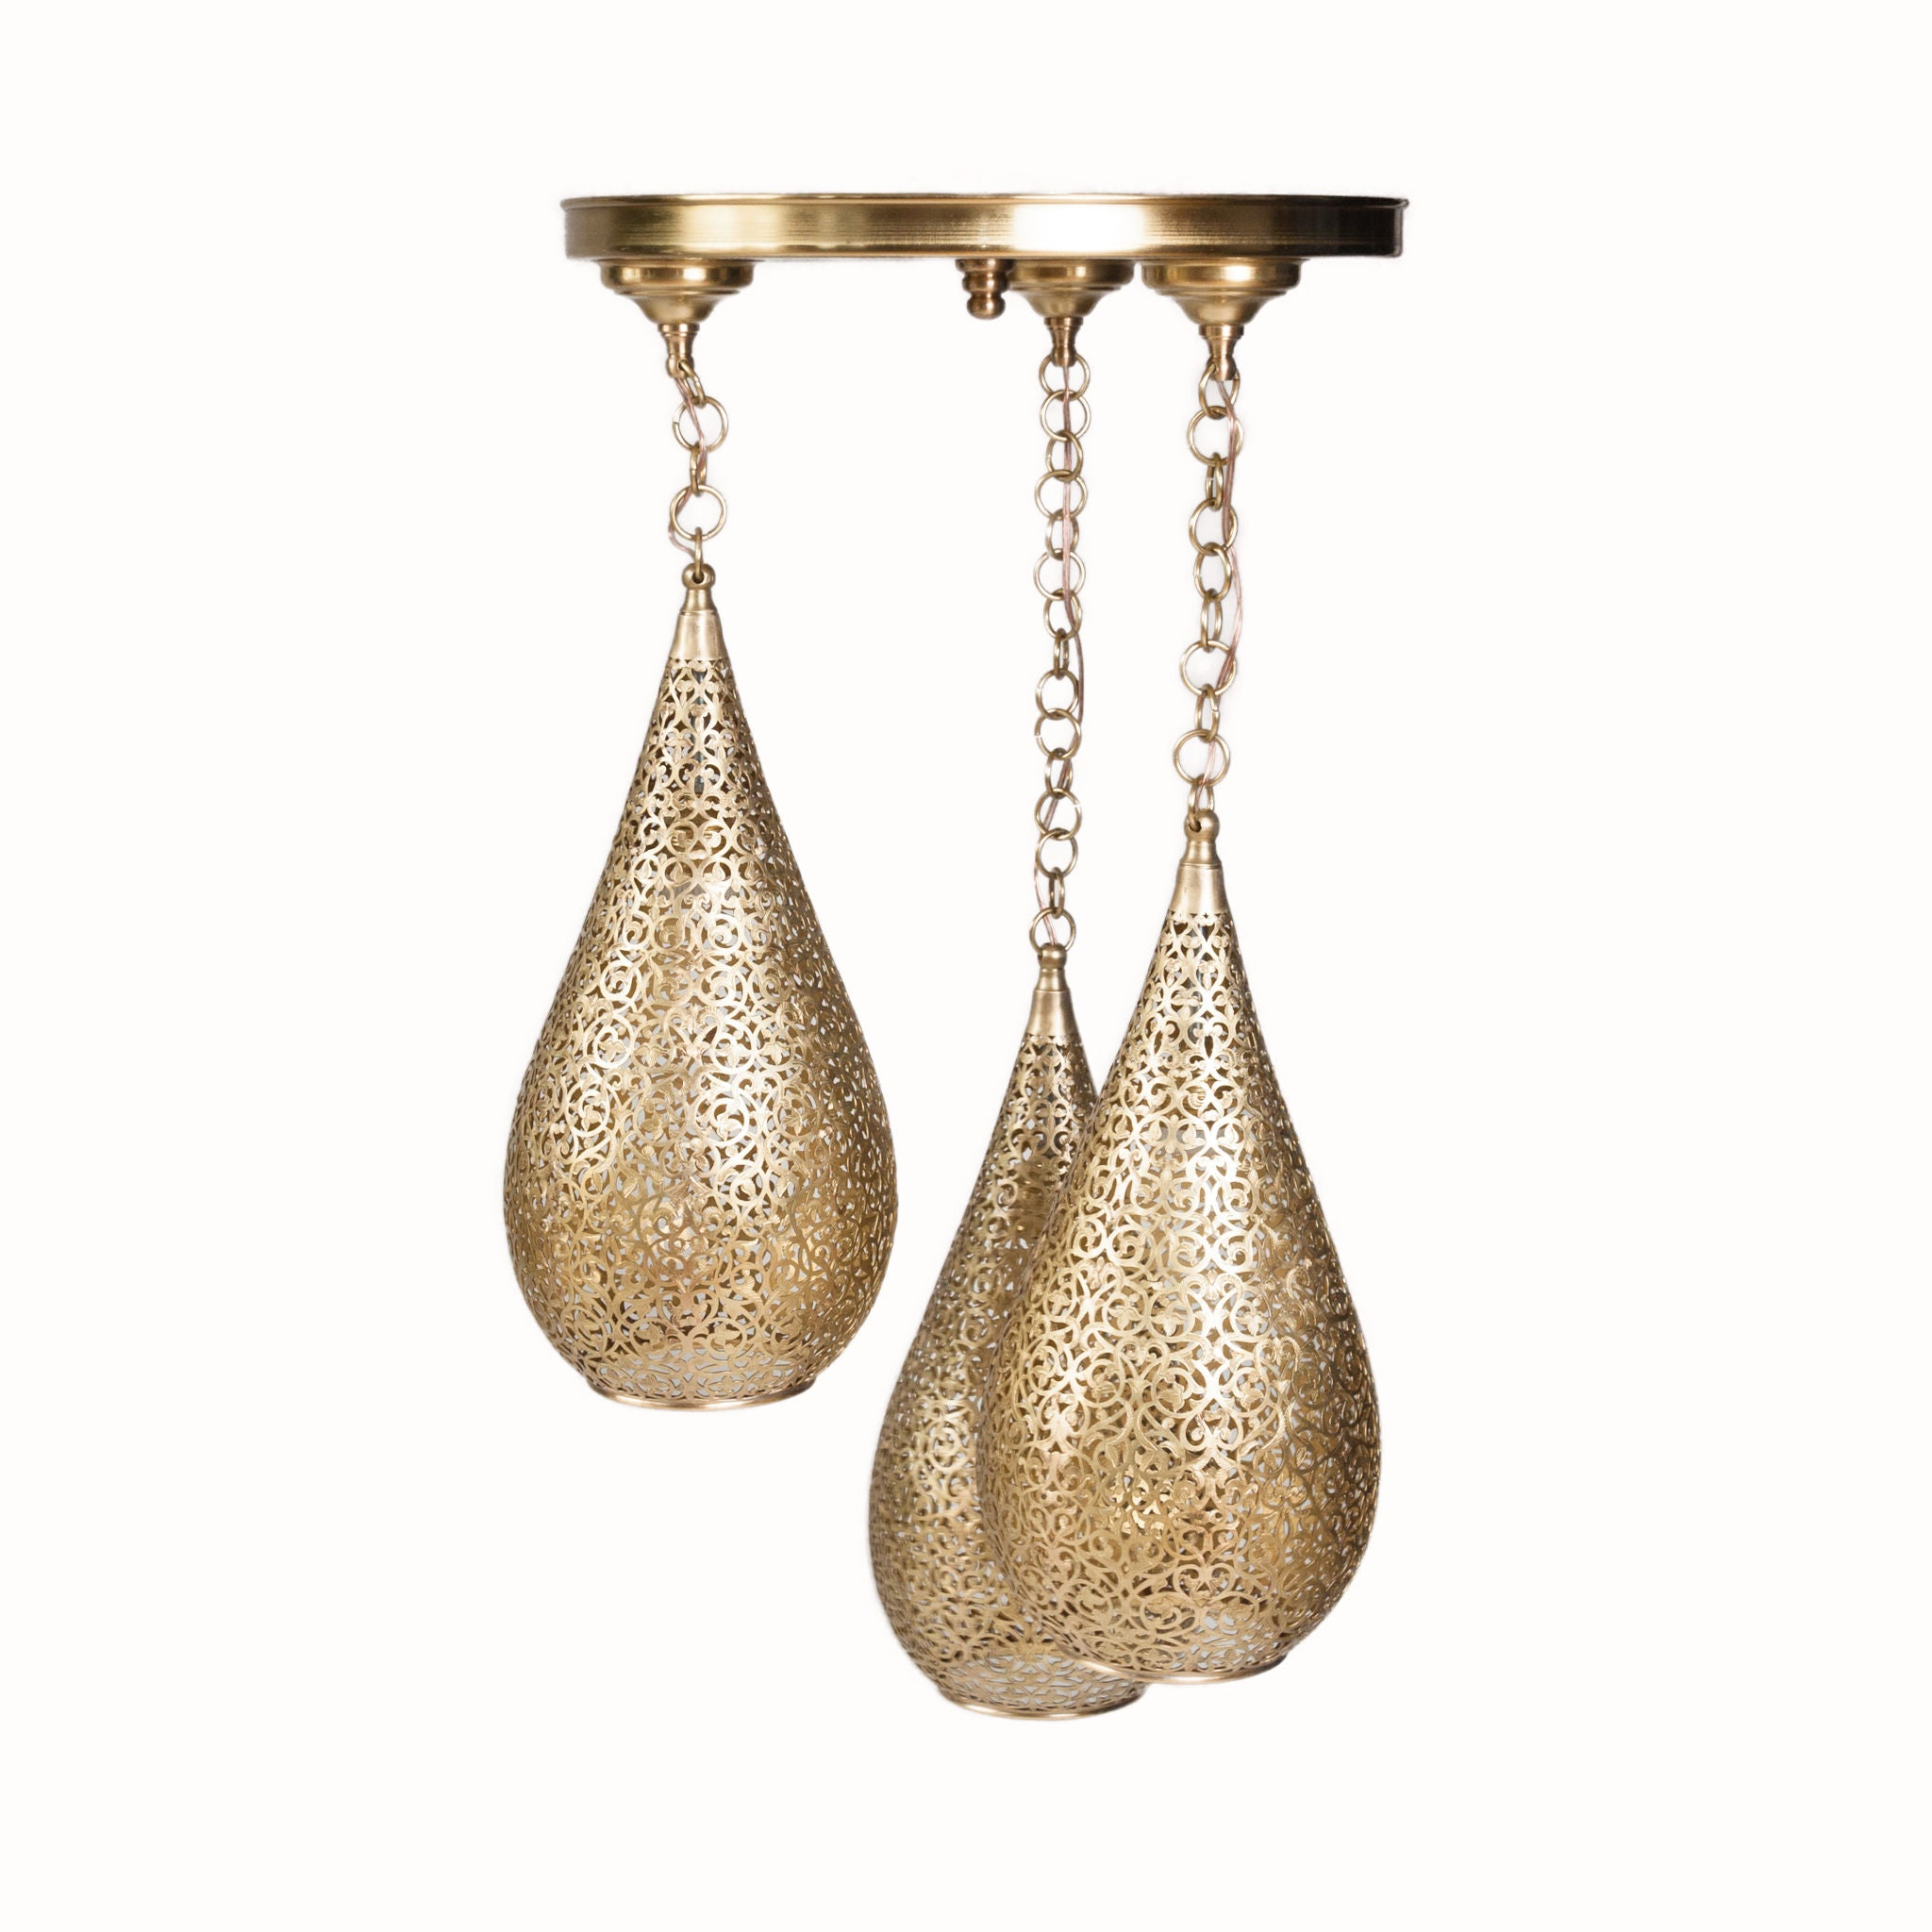 Moroccan Handmade Three-in-one Tear-Drop brass lamp